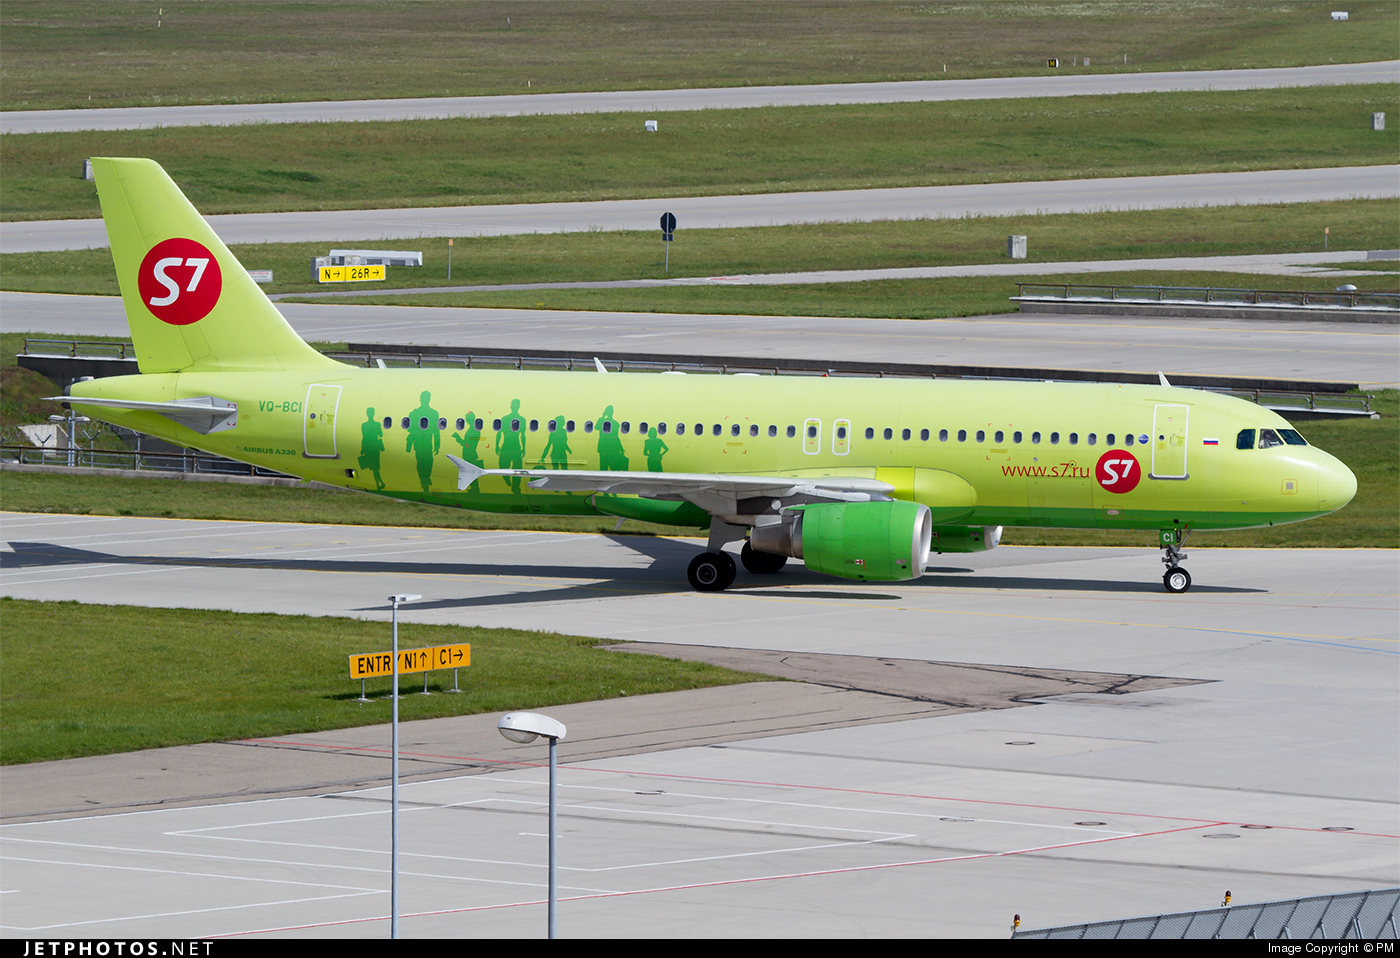 VQ-BCI - Airbus A320-214 - S7 Airlines